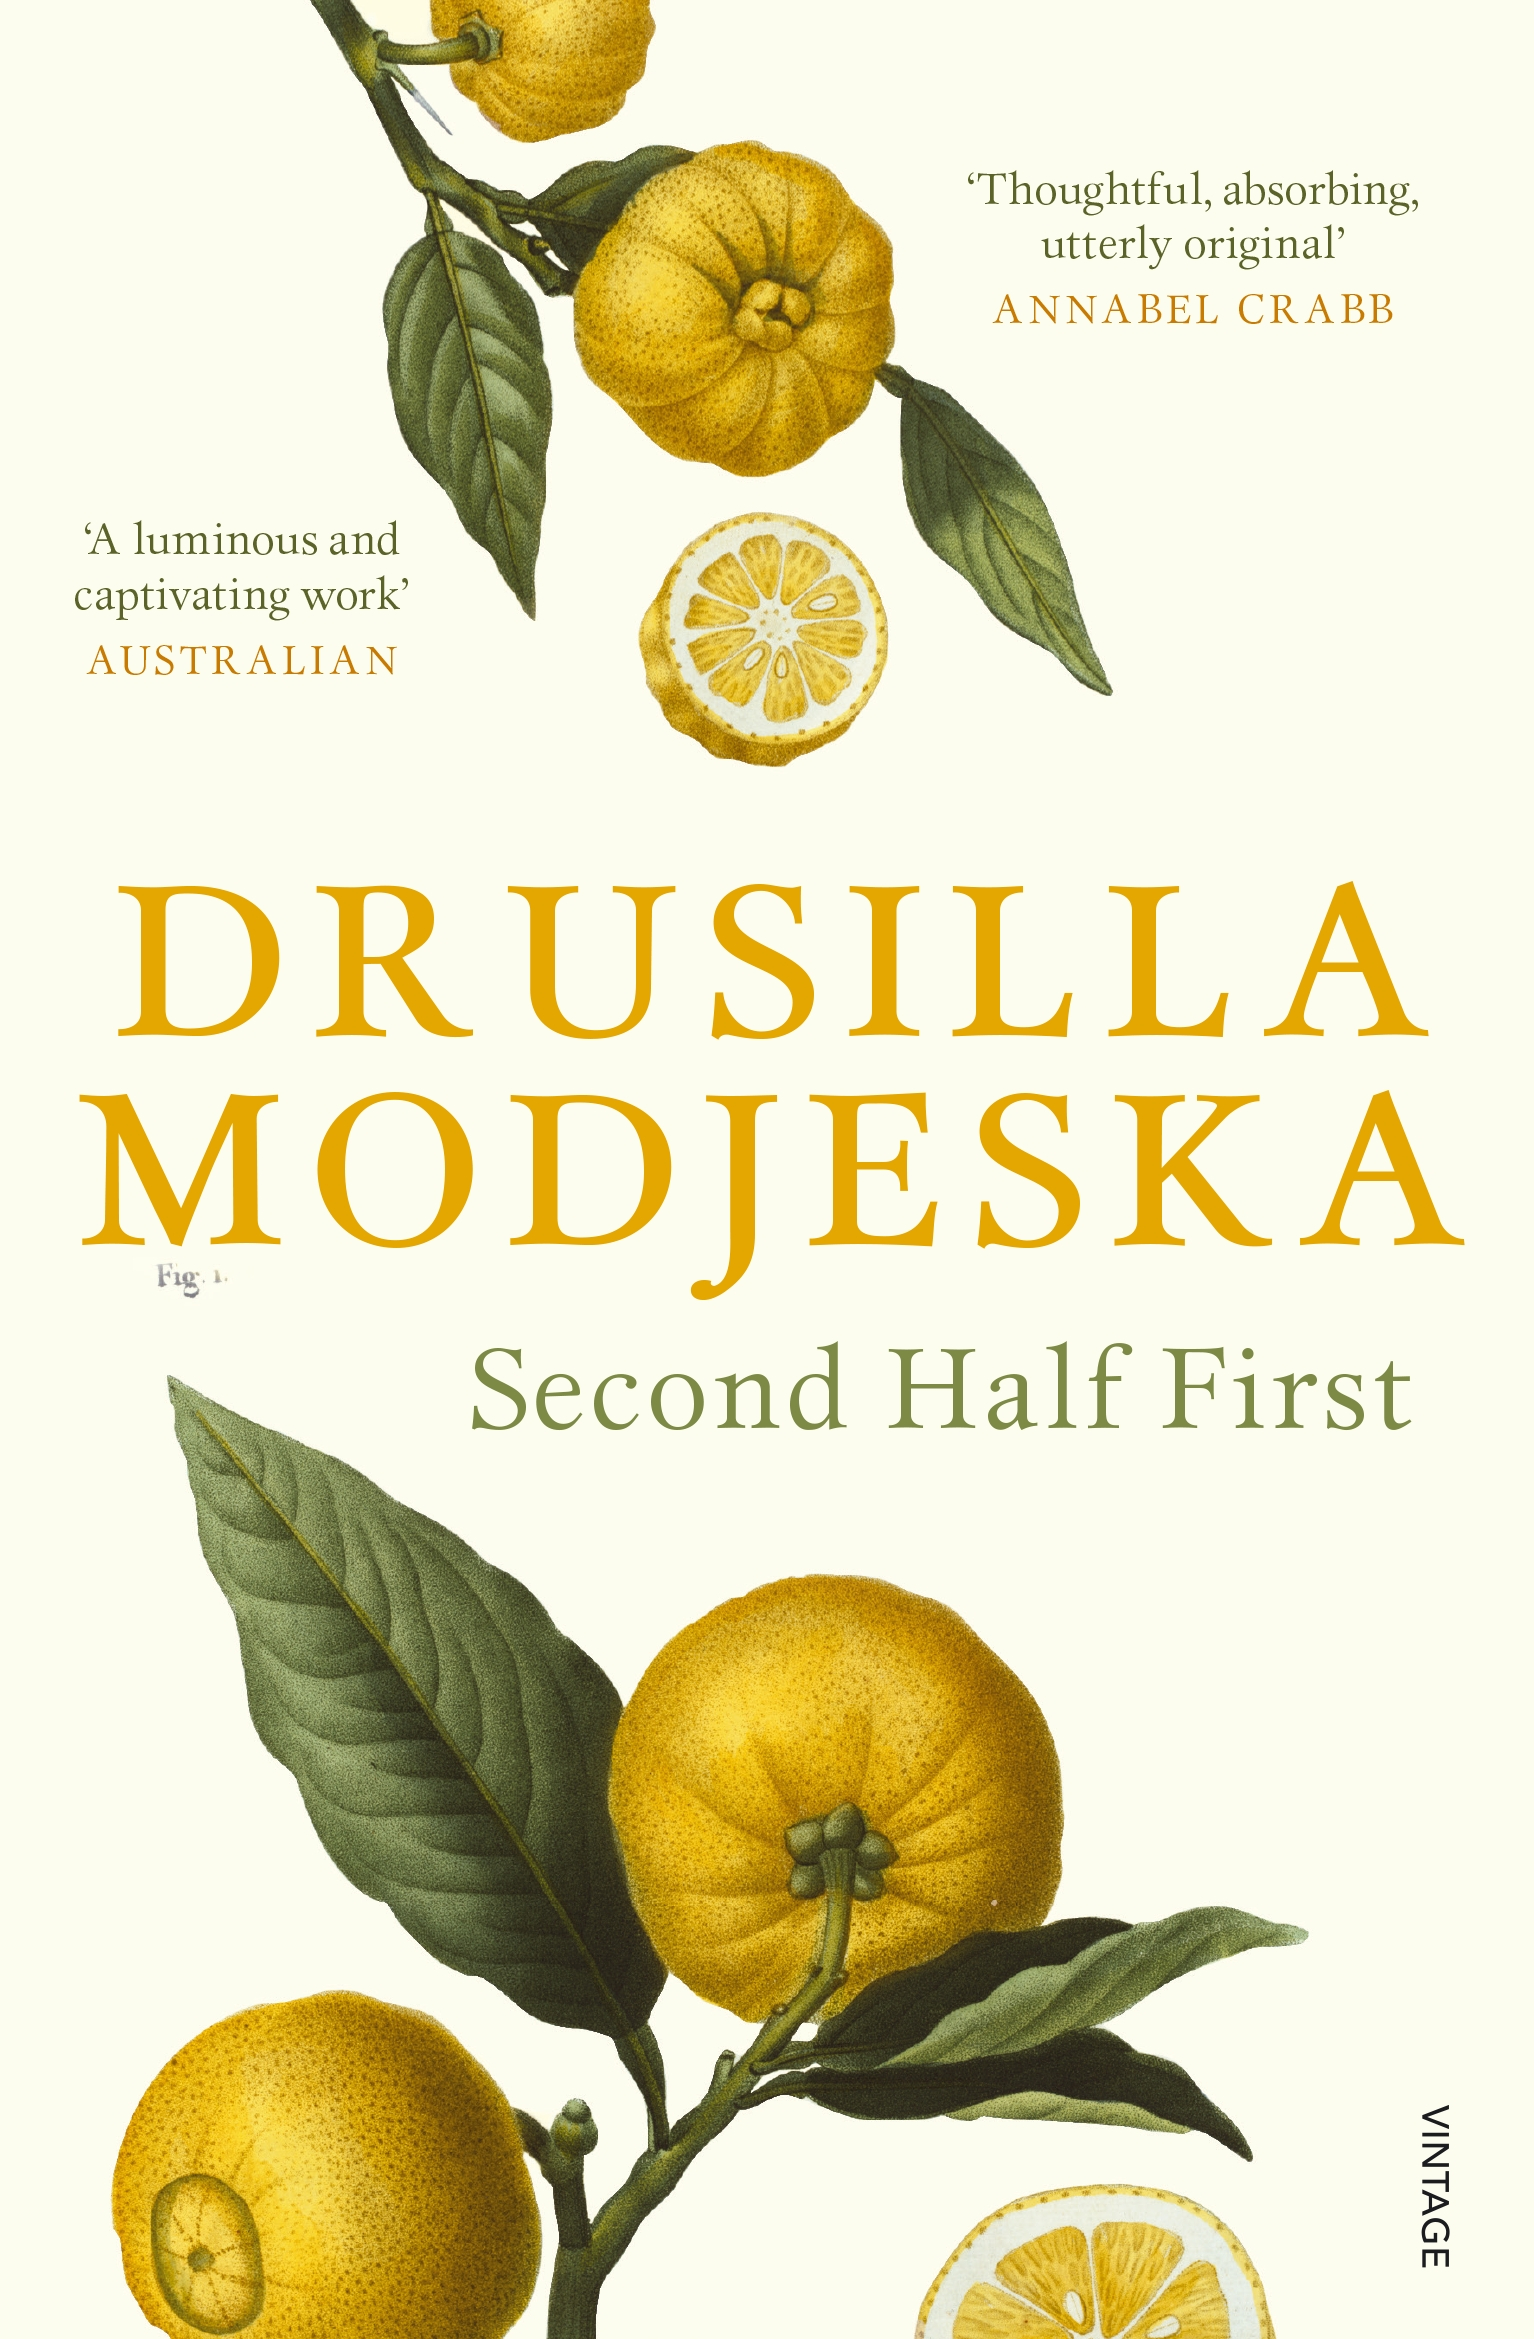 the orchard drusilla modjeska pdf